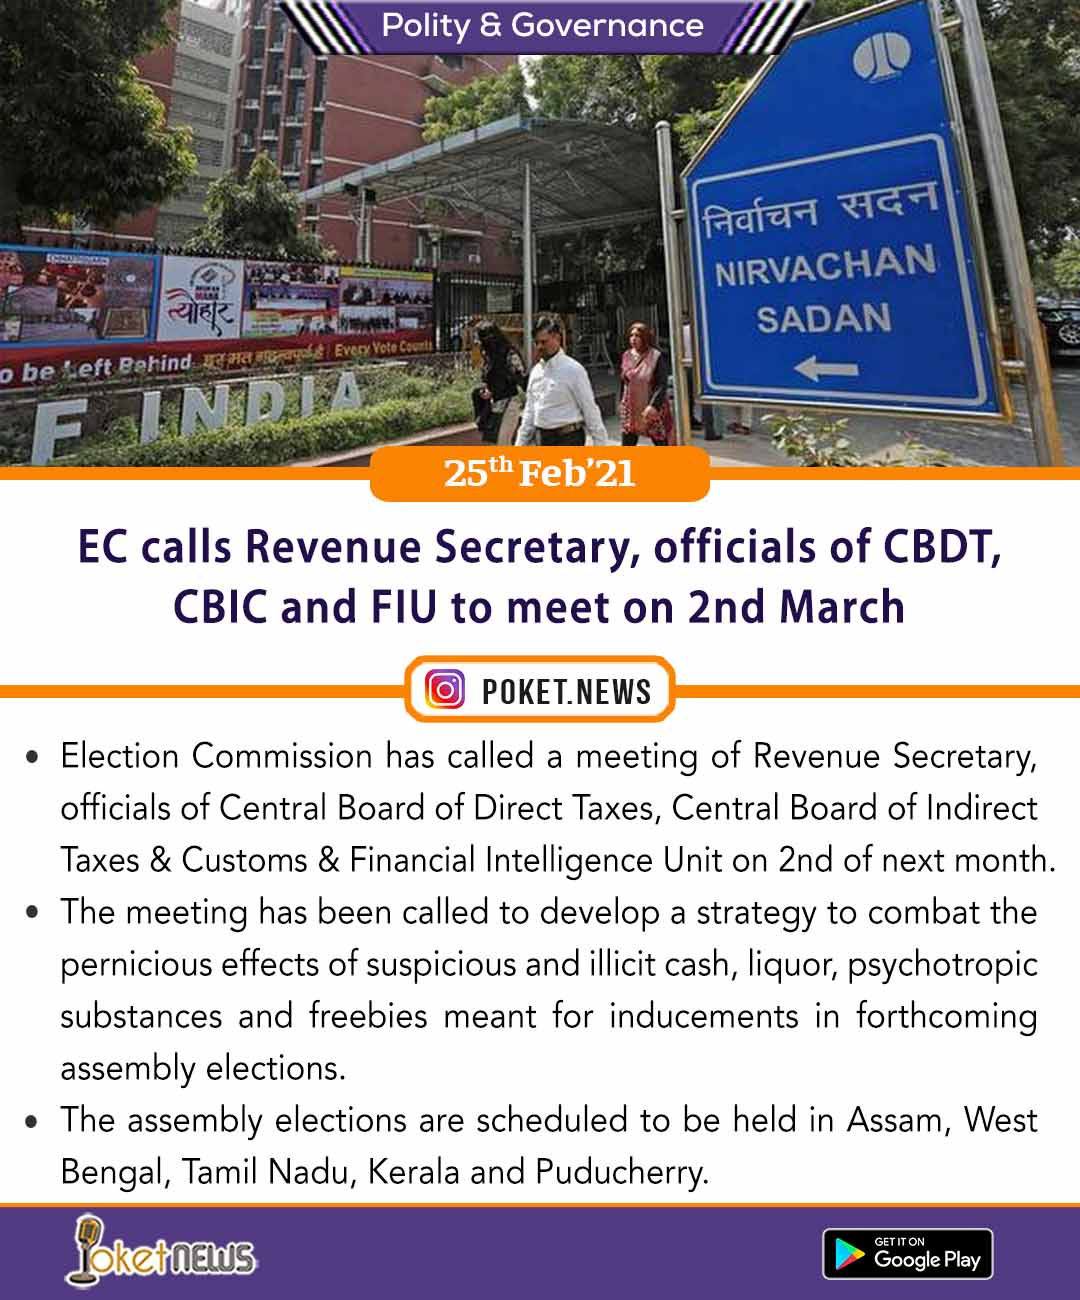 EC calls Revenue Secretary, officials of CBDT, CBIC and FIU to meet on 2nd March